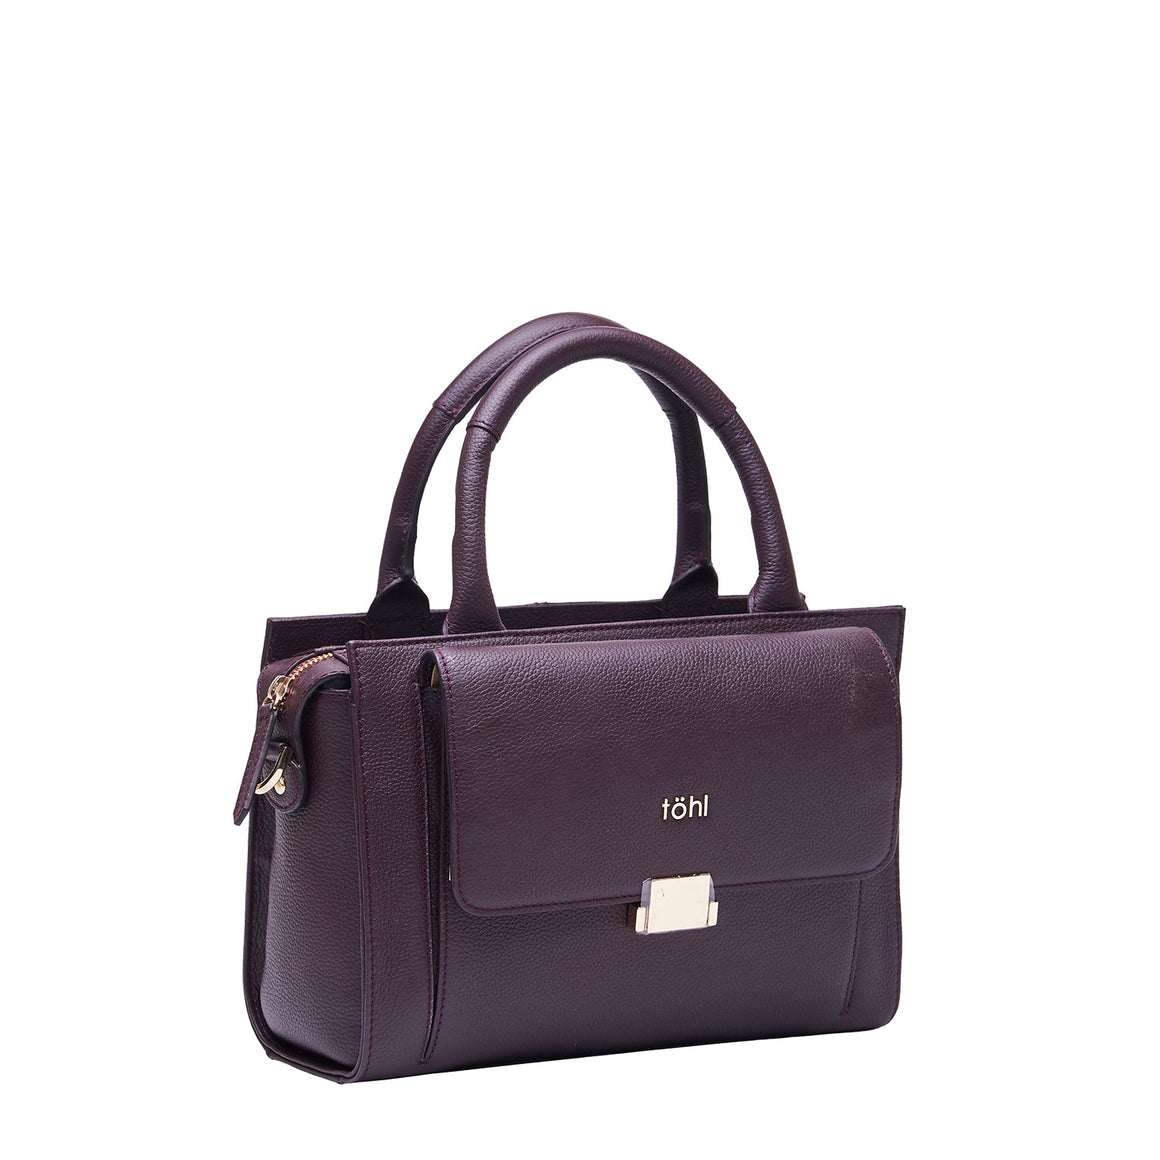 HH 0016 - TOHL CHISWELL WOMEN'S HAND BAG - PLUM